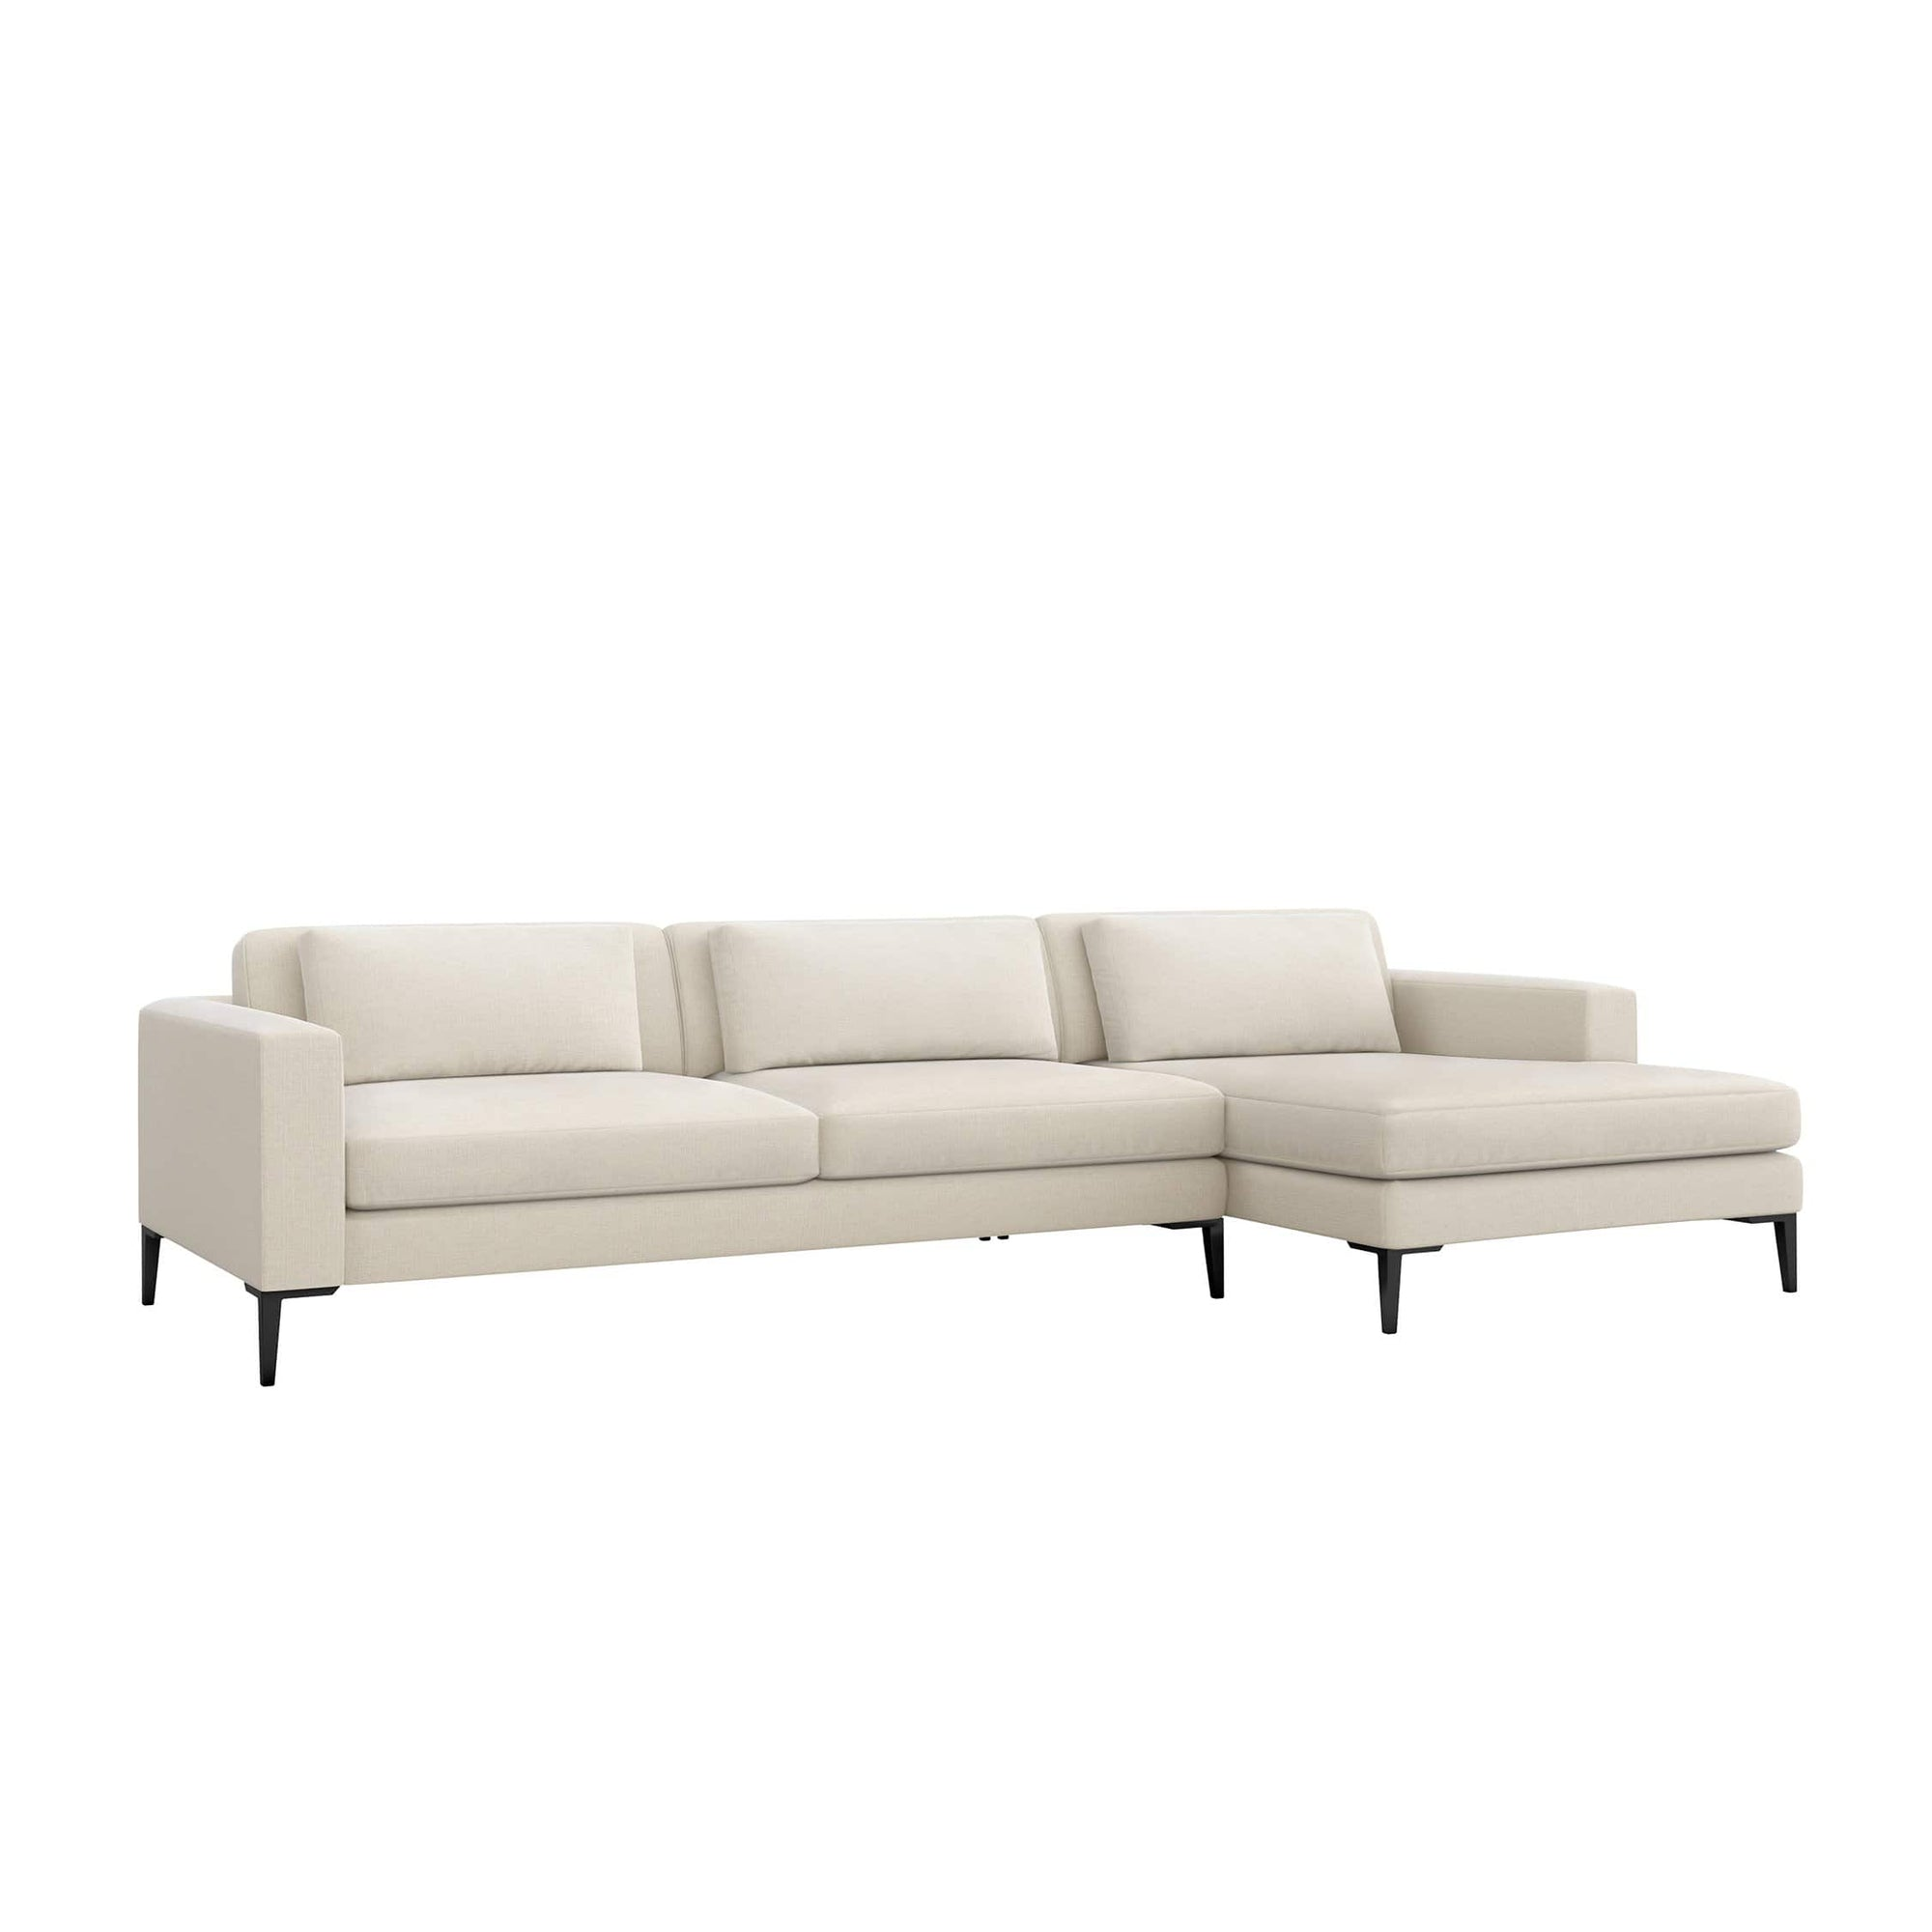 Interlude Home Interlude Home Izzy Right Chaise 2 Piece Sectional - Ivory 199014-1